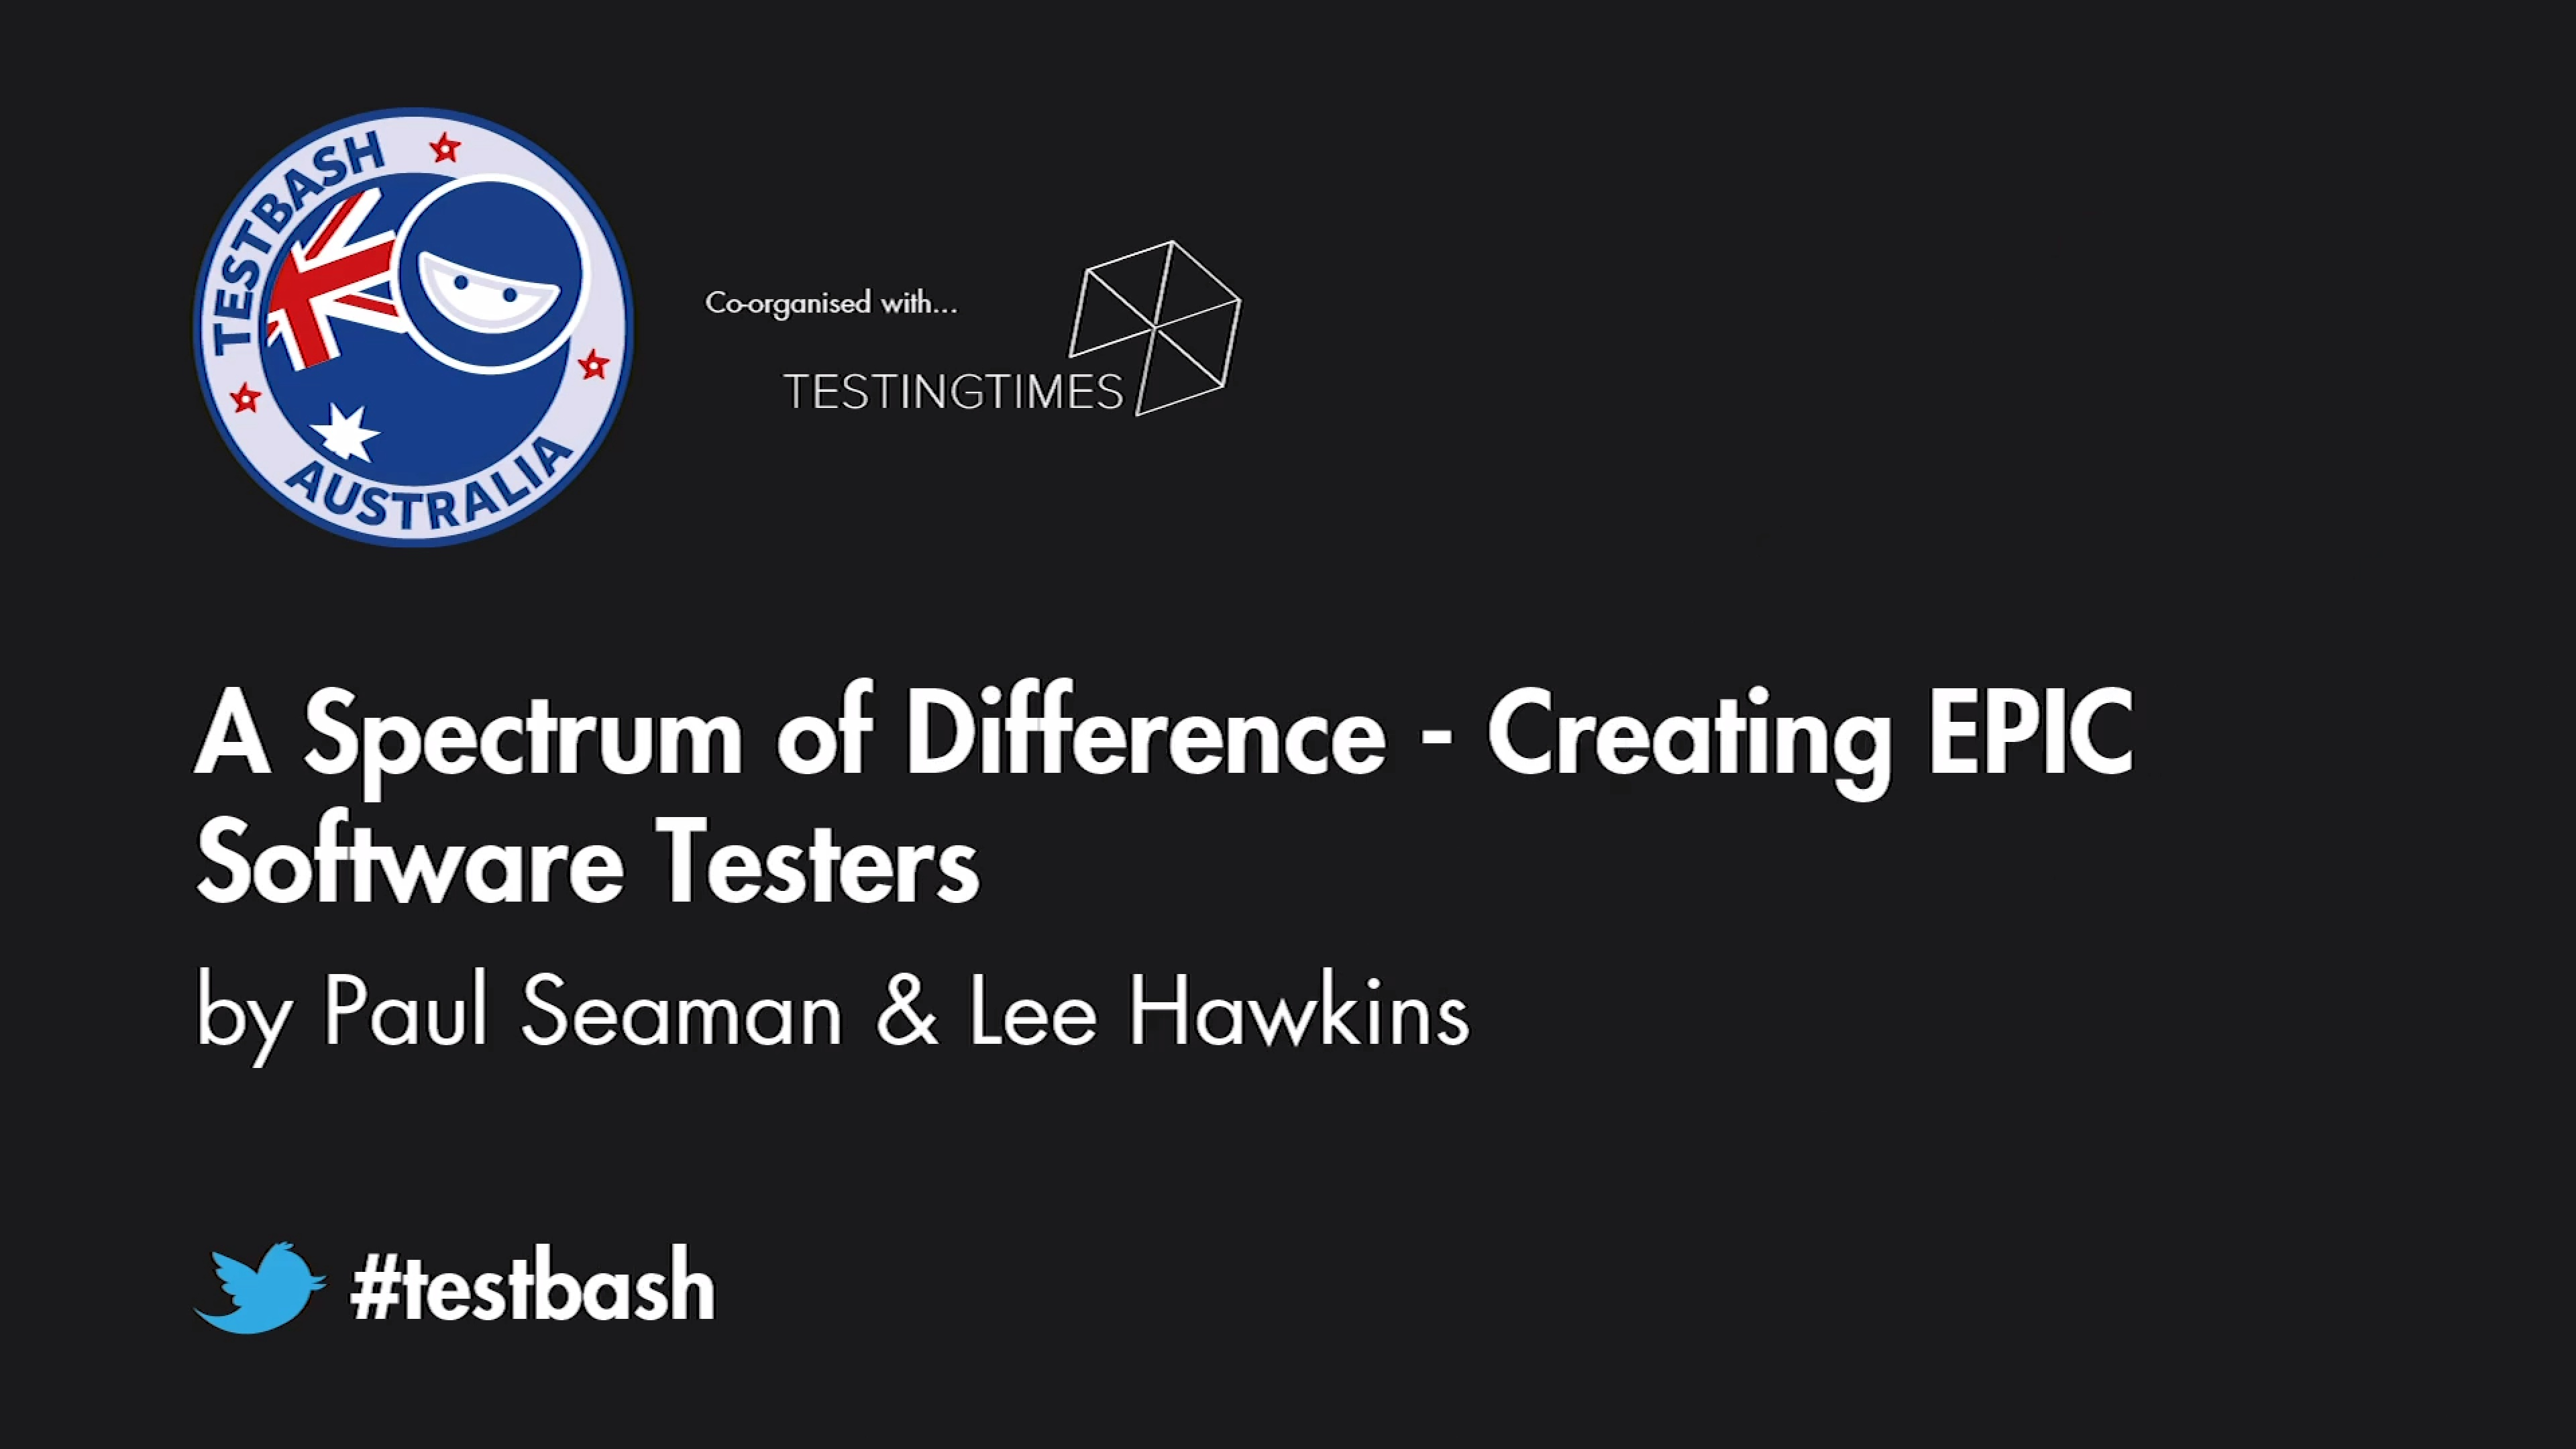 A Spectrum of Difference: Creating EPIC Software Testers - Paul Seaman & Lee Hawkins